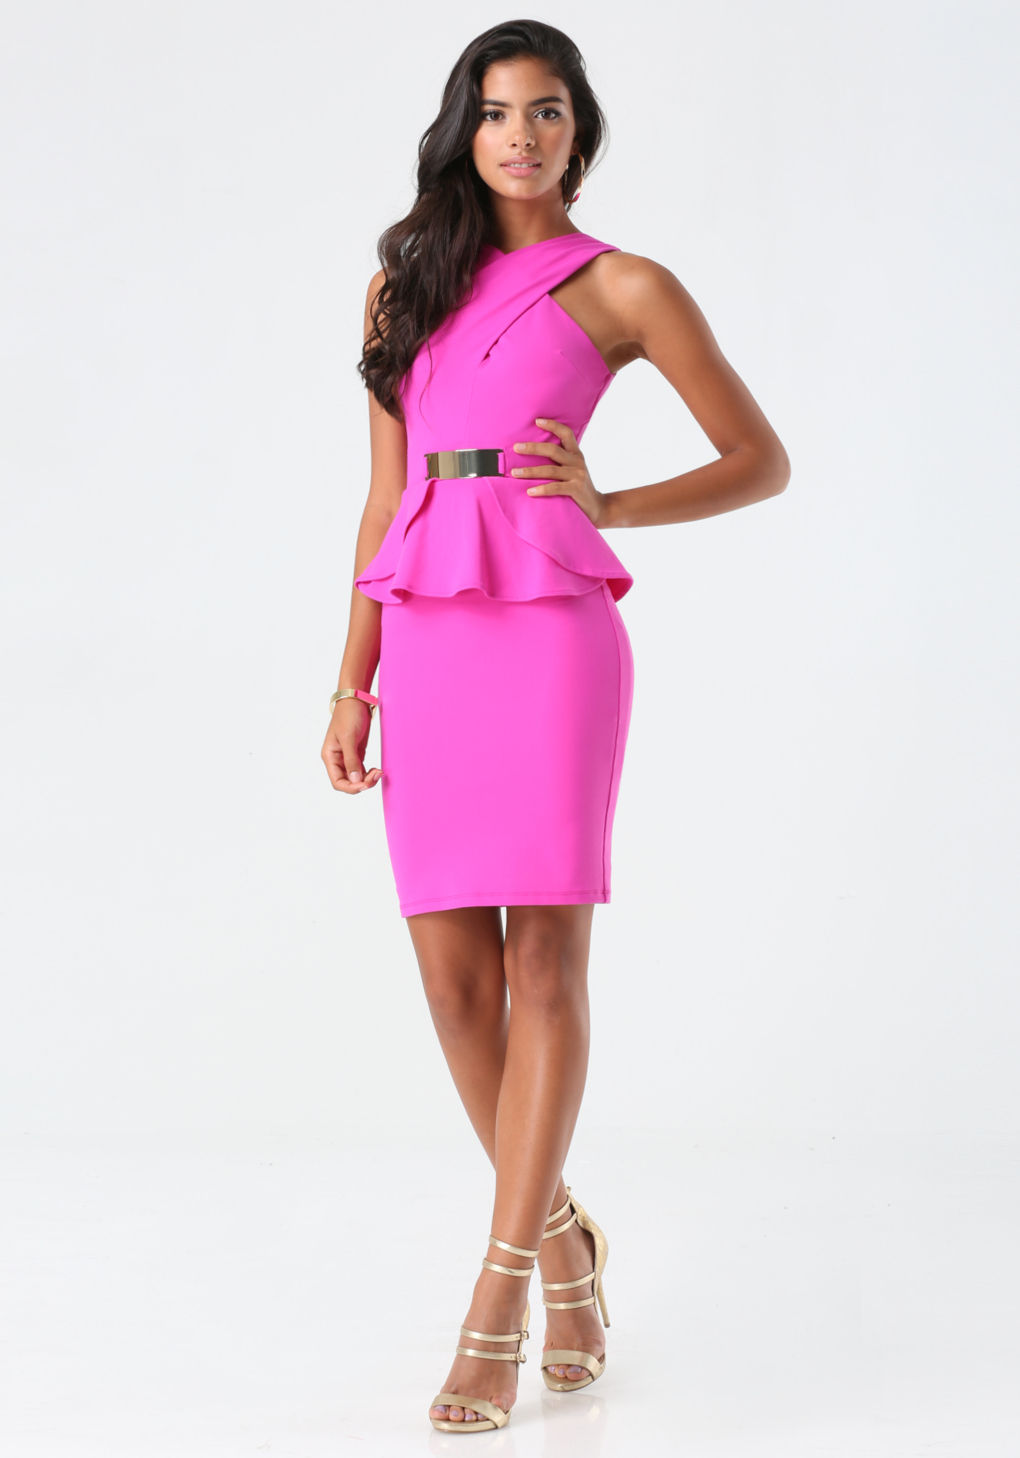 Bebe Crisscross Peplum Dress in Pink | Lyst